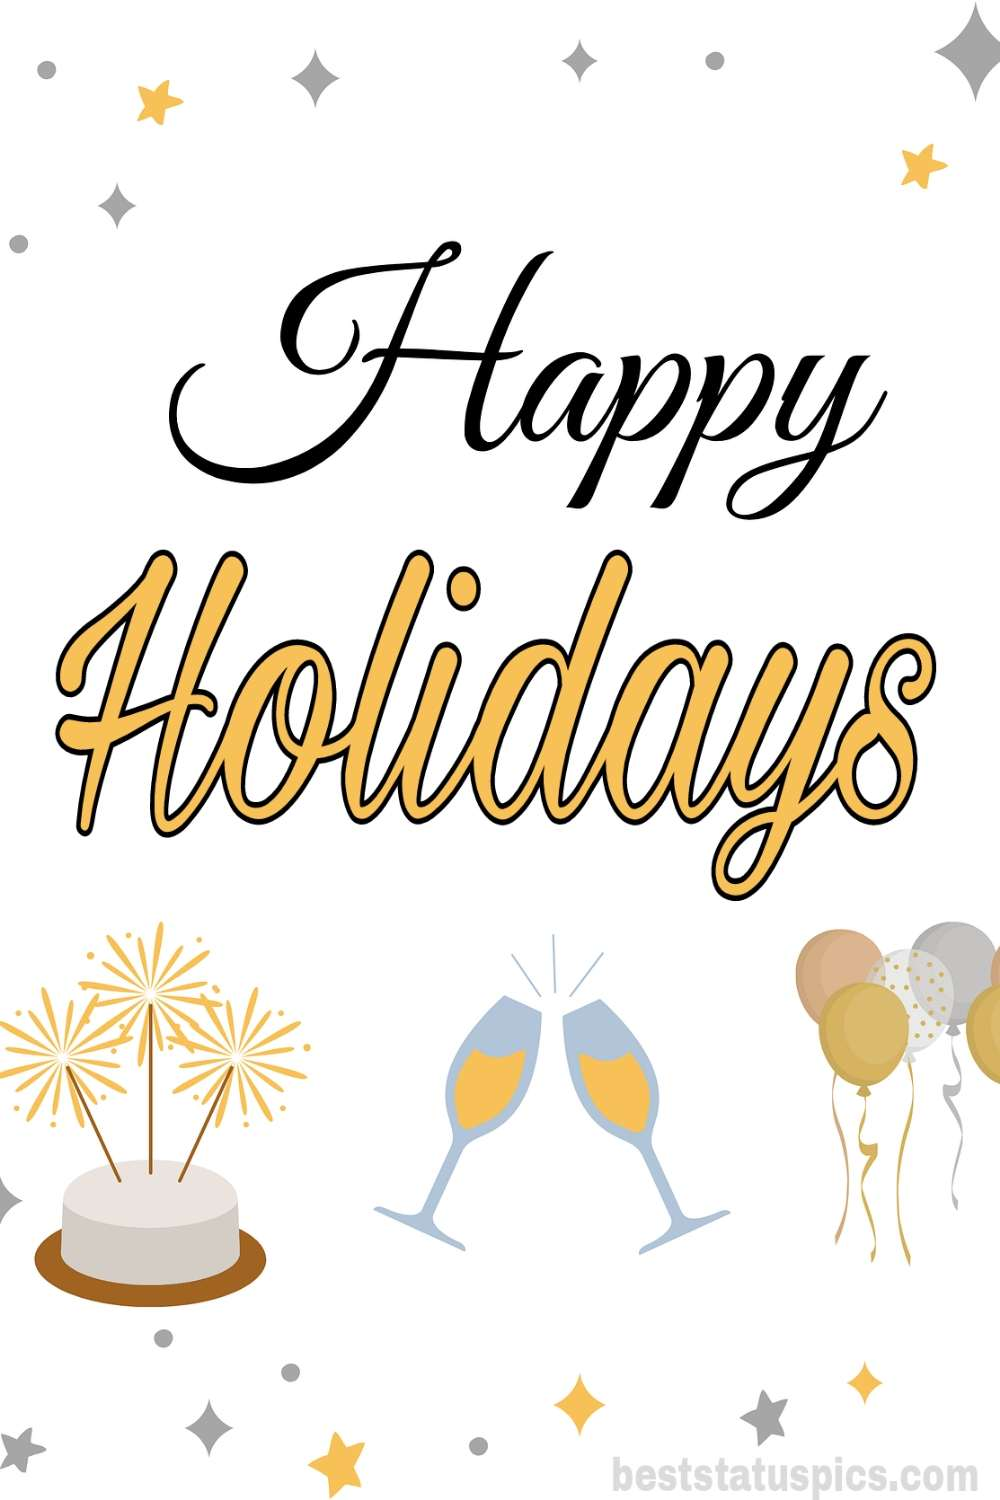 Happy holidays 2022 wishes cards for friends and Whatsapp DP